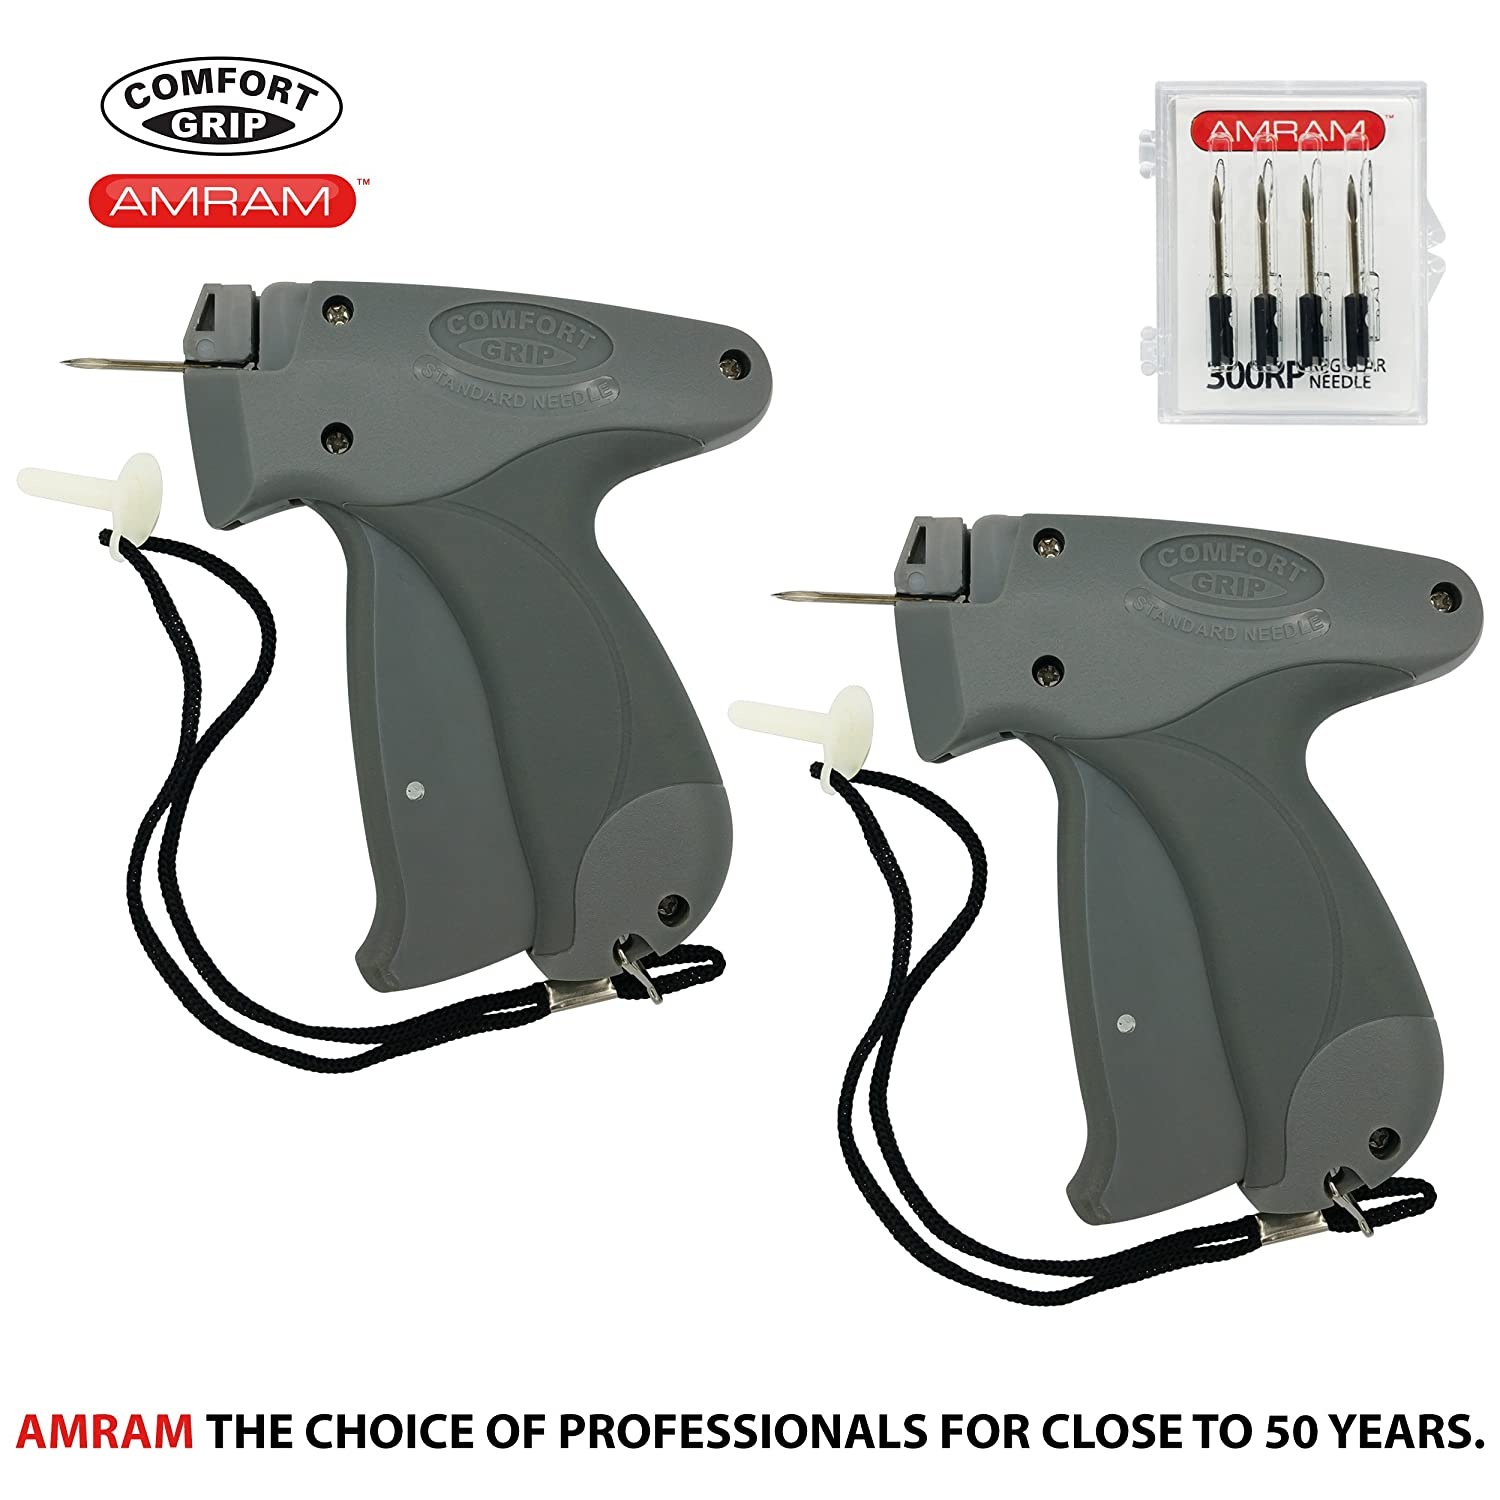 Amram Comfort Grip Standard 2 Pack Tagging Gun Kit Includes 6 Needles.